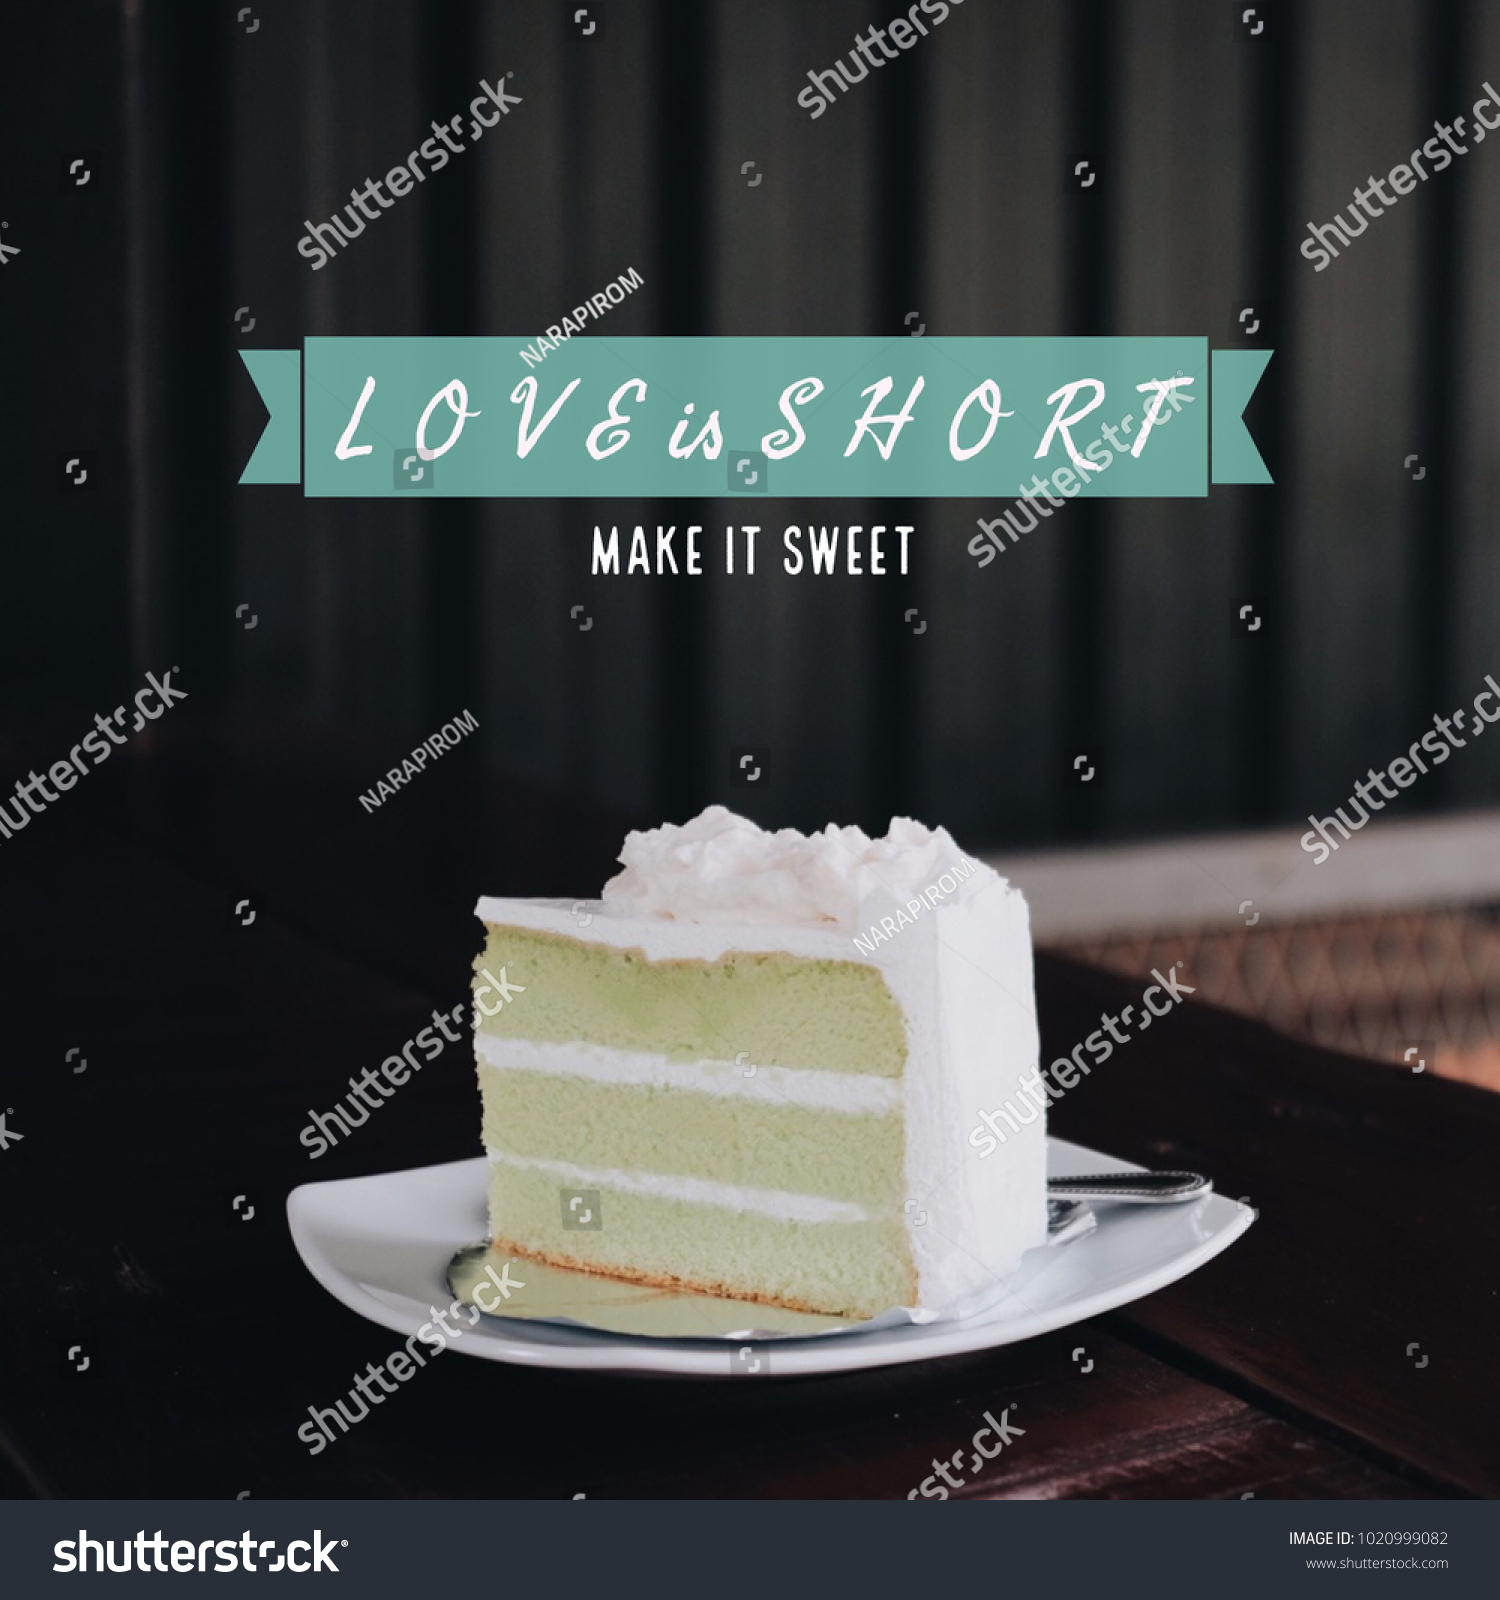 Inspiration Motivation Quote About Love Cake Stock Photo Edit Now